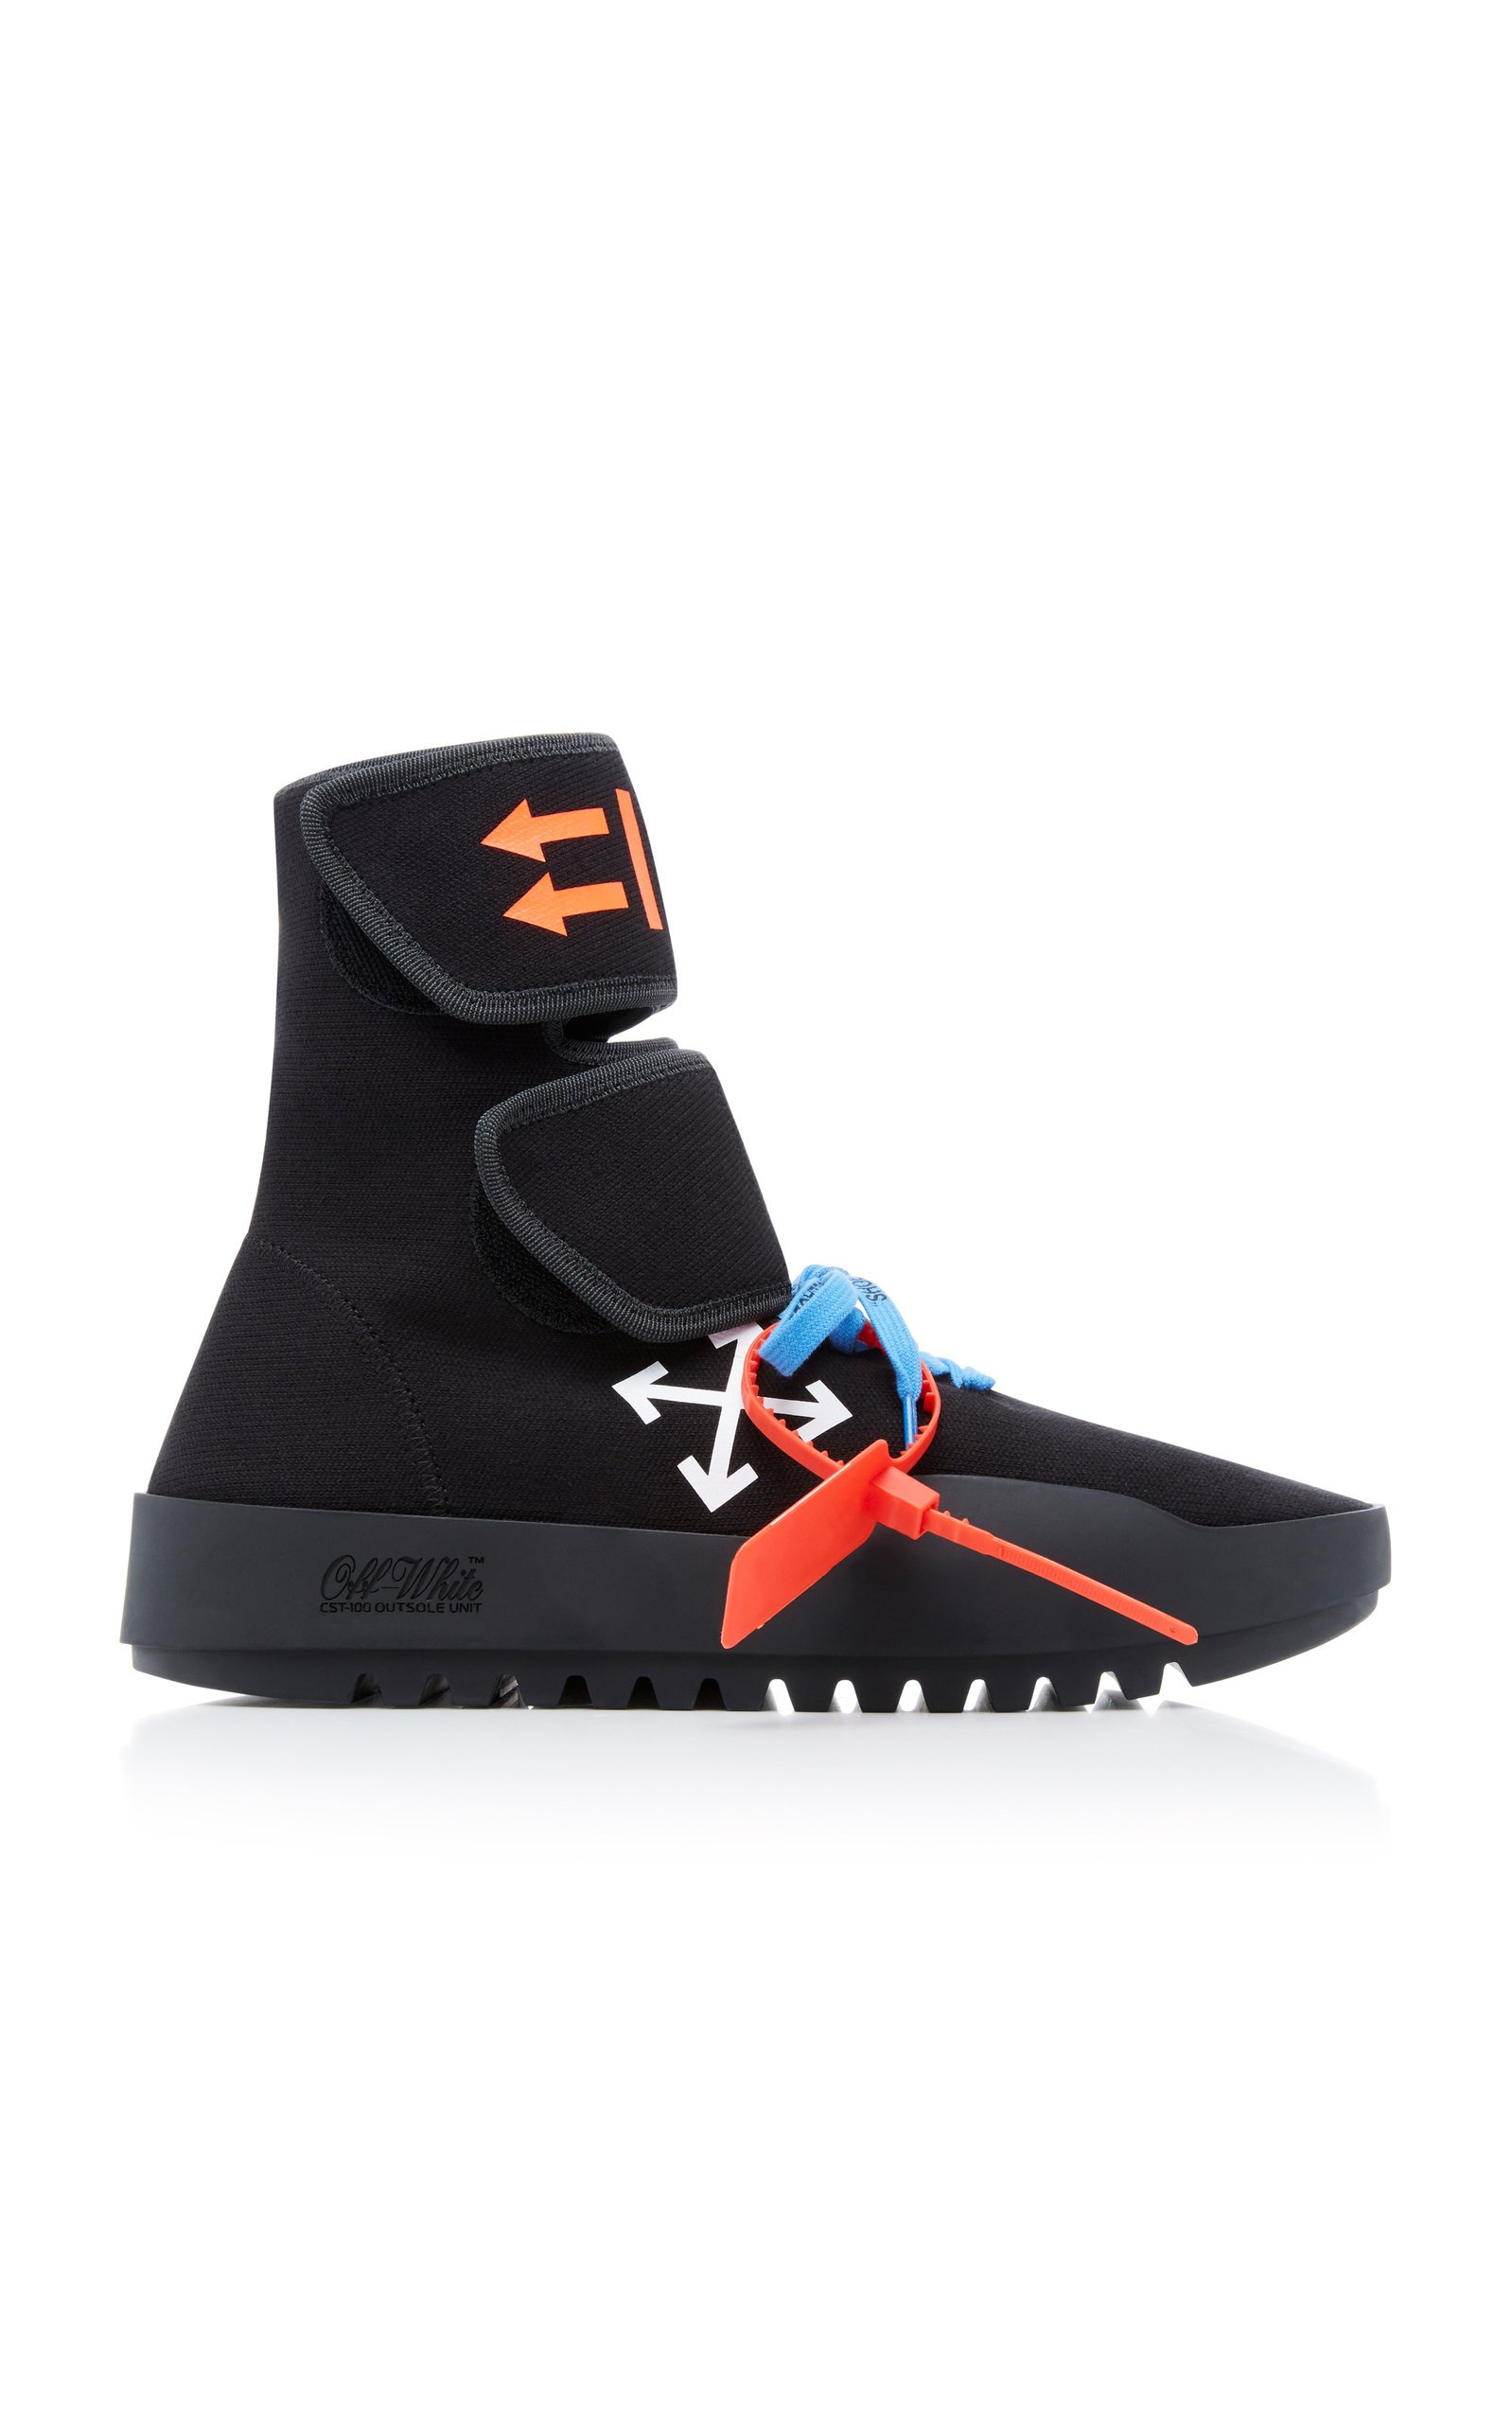 Cst- 001 Neoprene Sneakers By Off-White